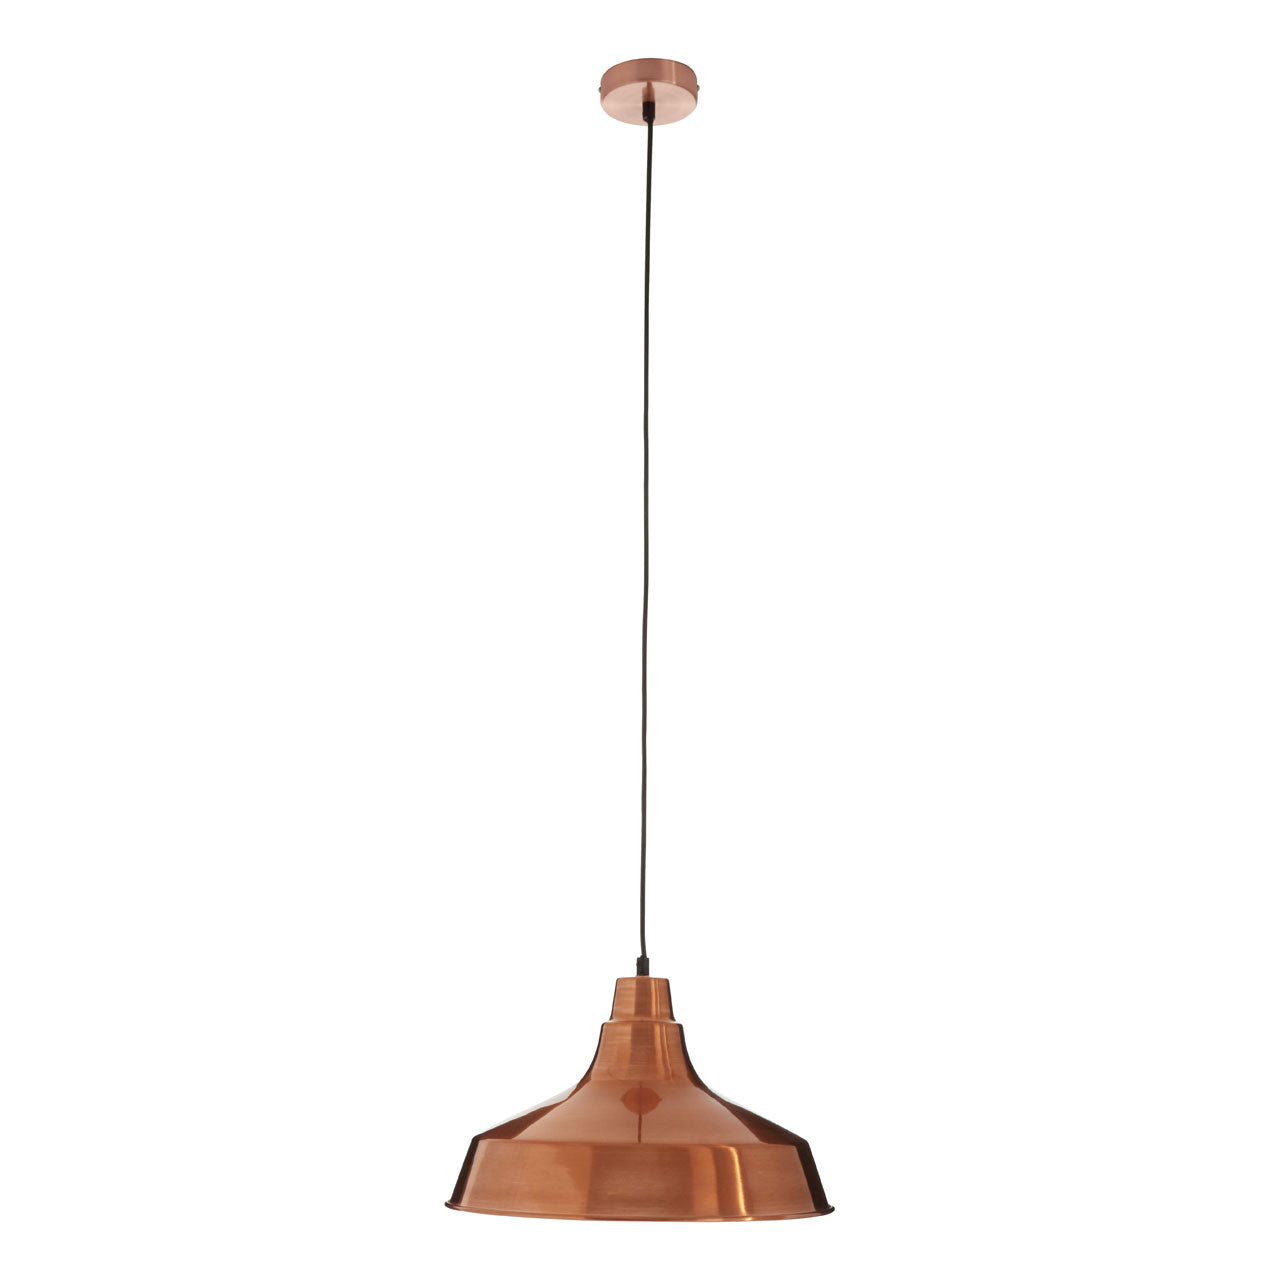 Brinn Pendant Light Copper - Ezzo